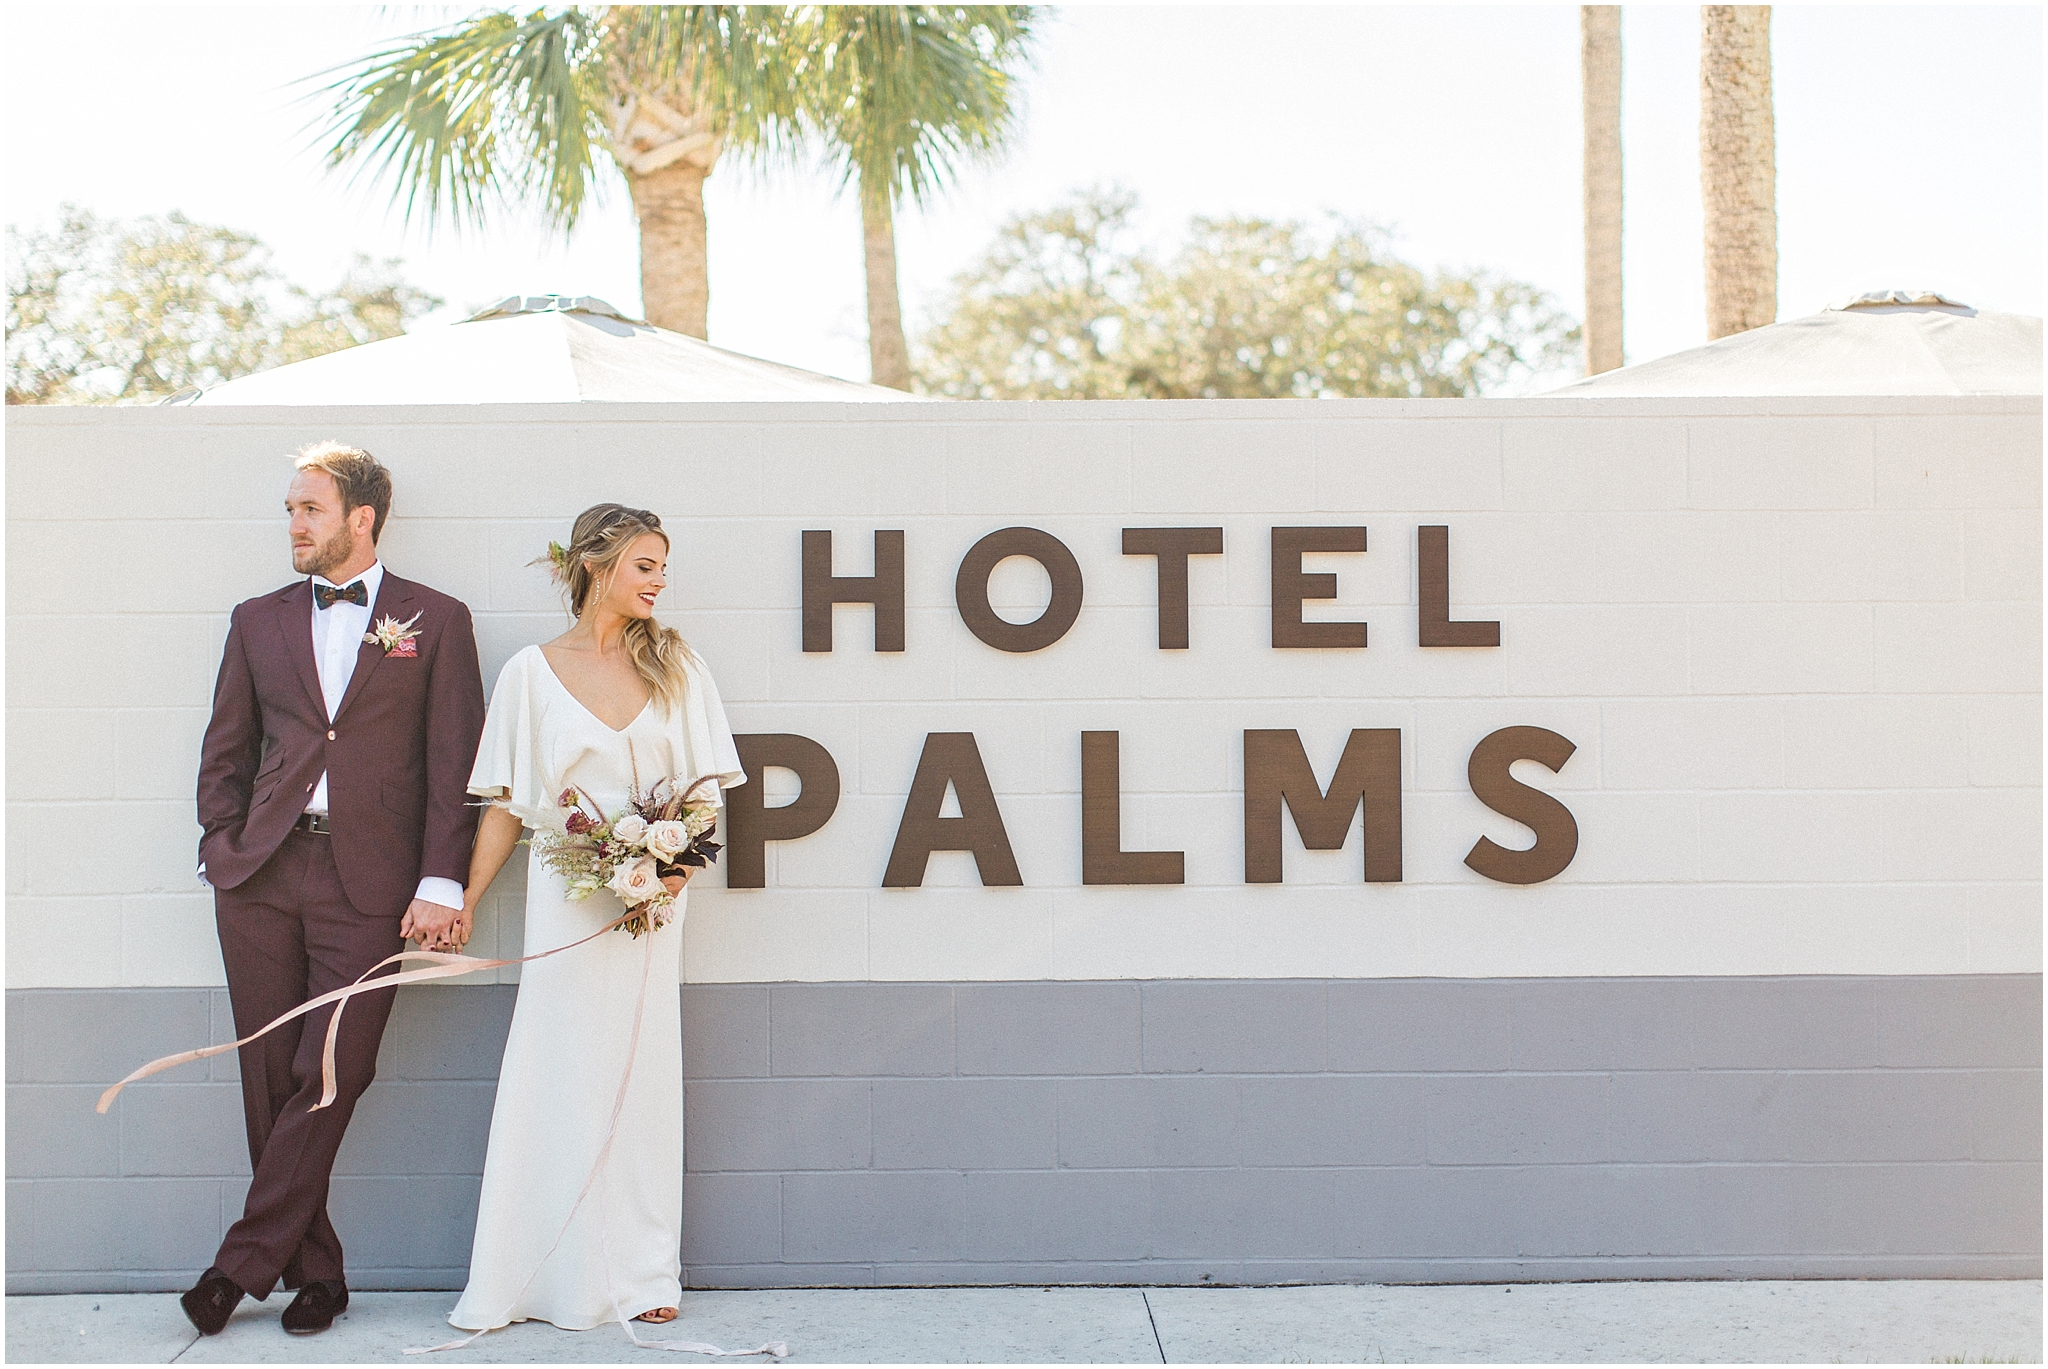 Audrey & Leon at Hotel Palms